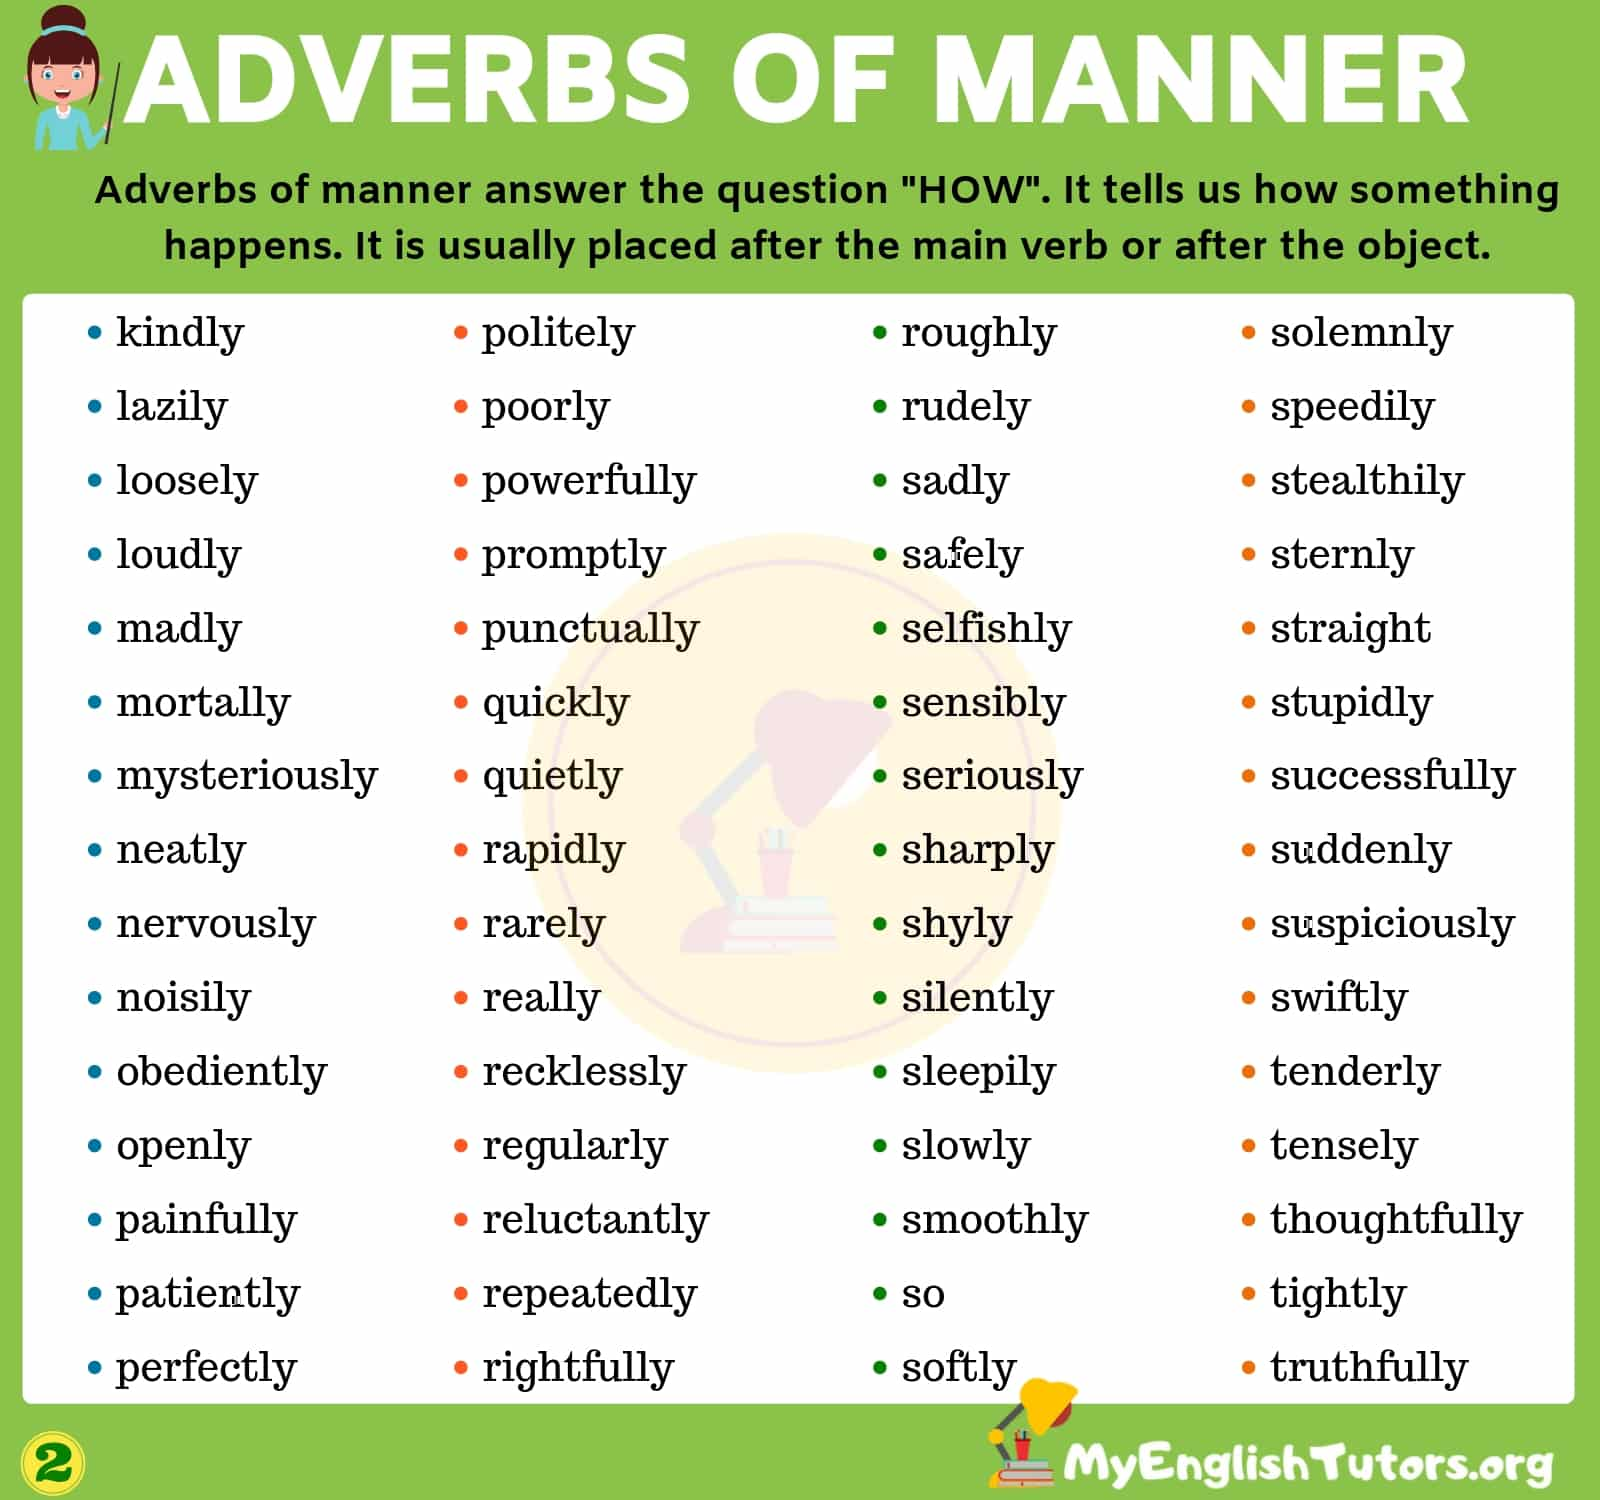 An Important List Of Adverbs Of Manner You Should Learn